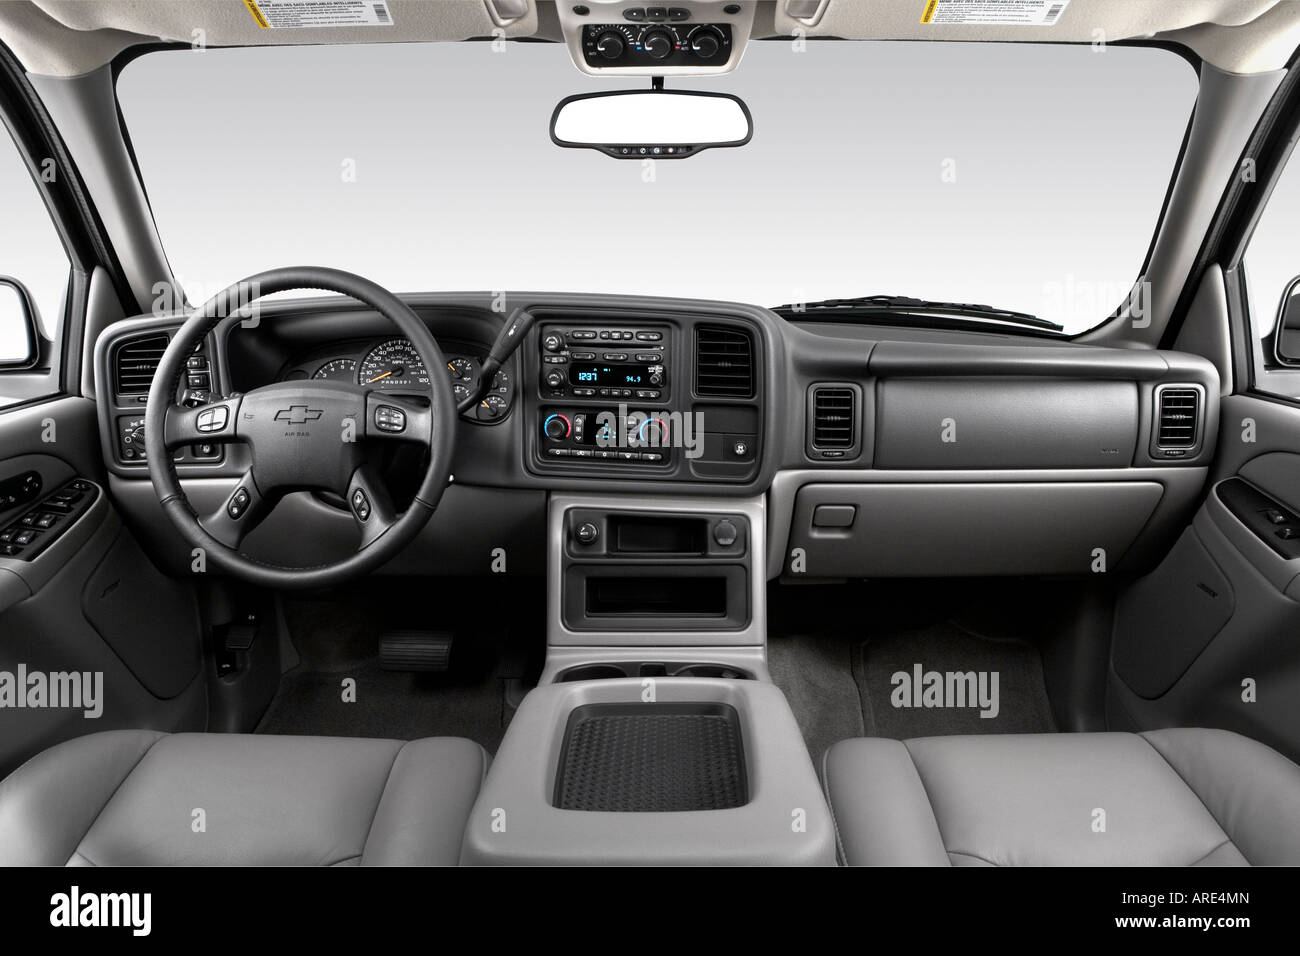 2006 chevrolet tahoe z71 in silver dashboard center console 2006 chevrolet tahoe z71 in silver dashboard center console gear shifter view sciox Image collections